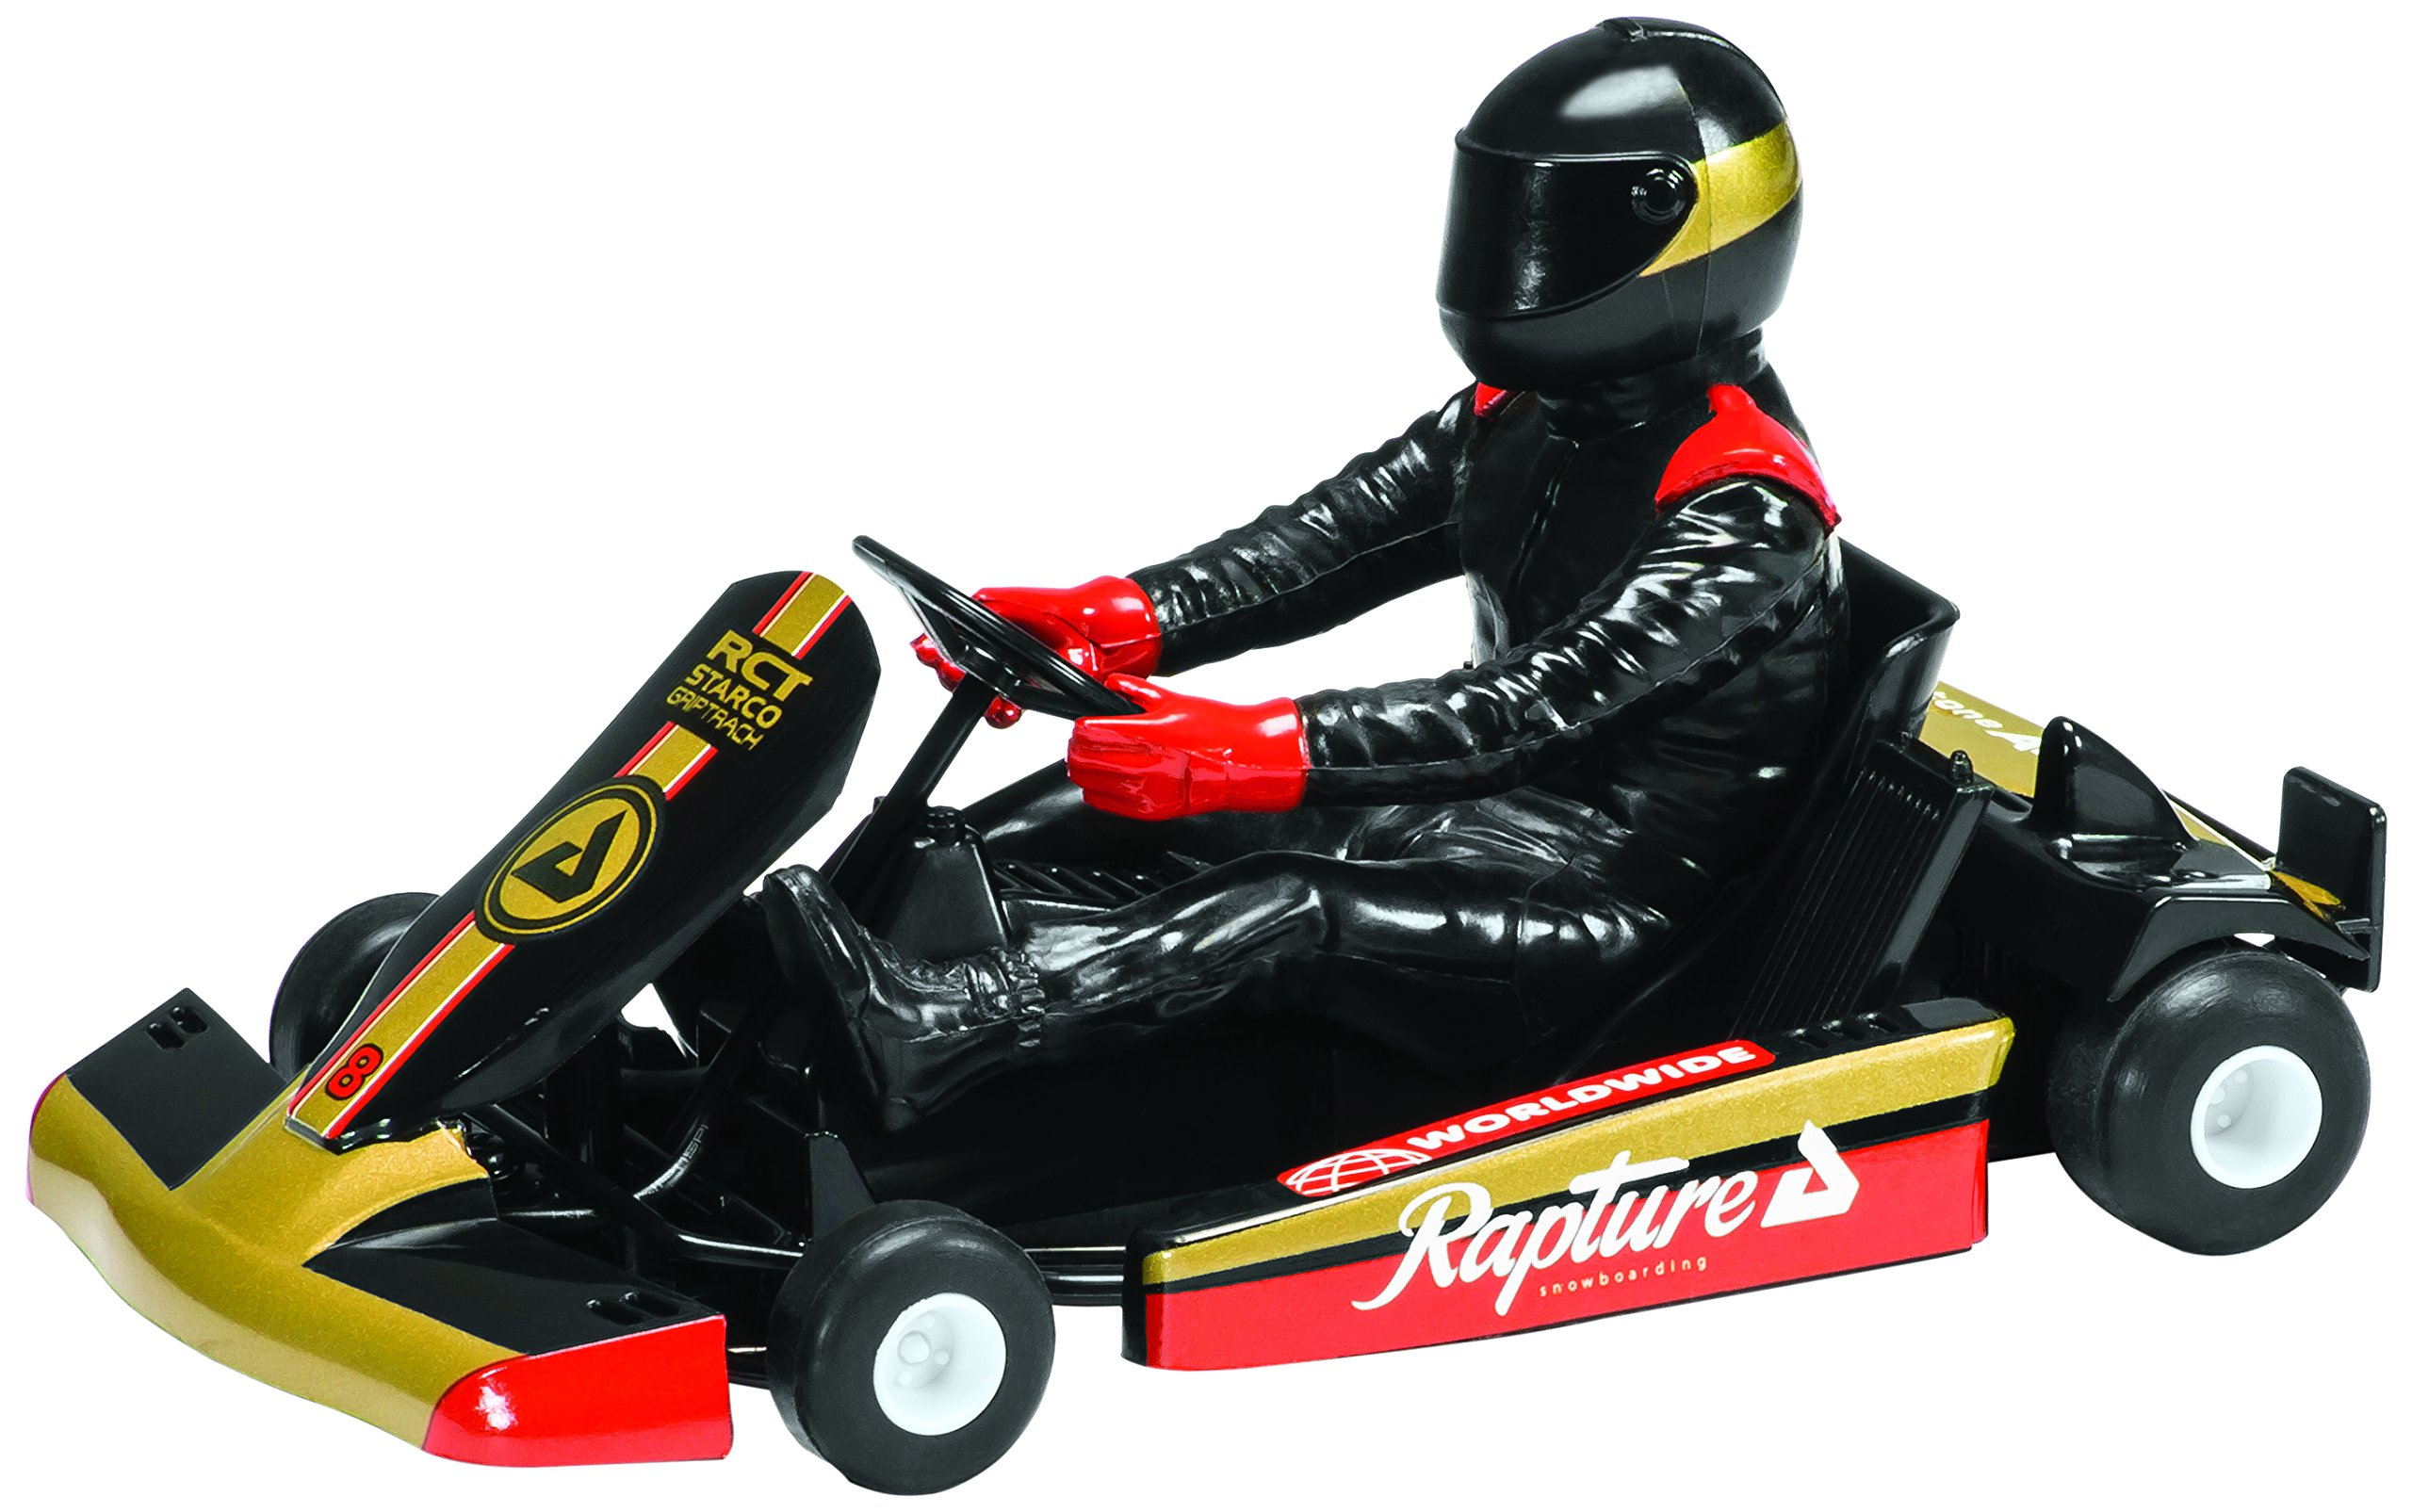 Scalextric Super Kart 1 Black #8 1:32nd Scale Slot Car by Scalextric (Image #1)